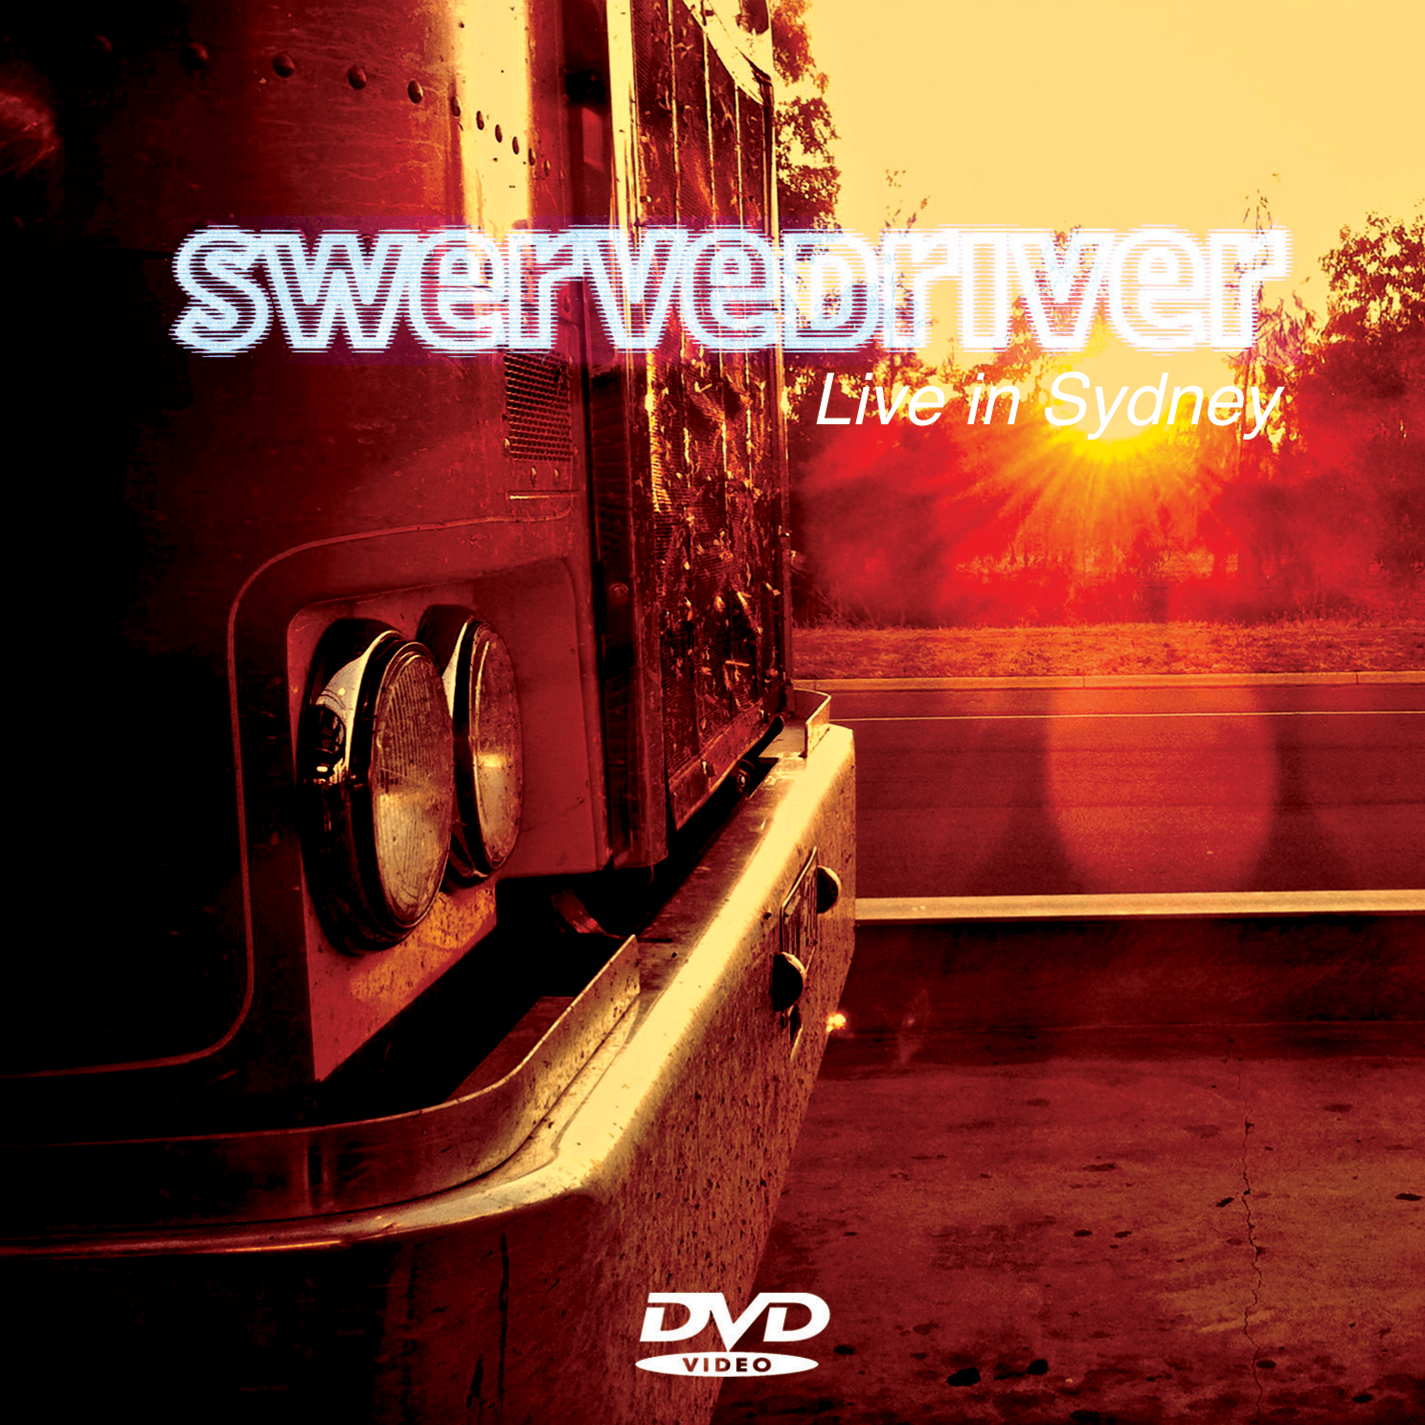 Swervedriver: Live in Sydney